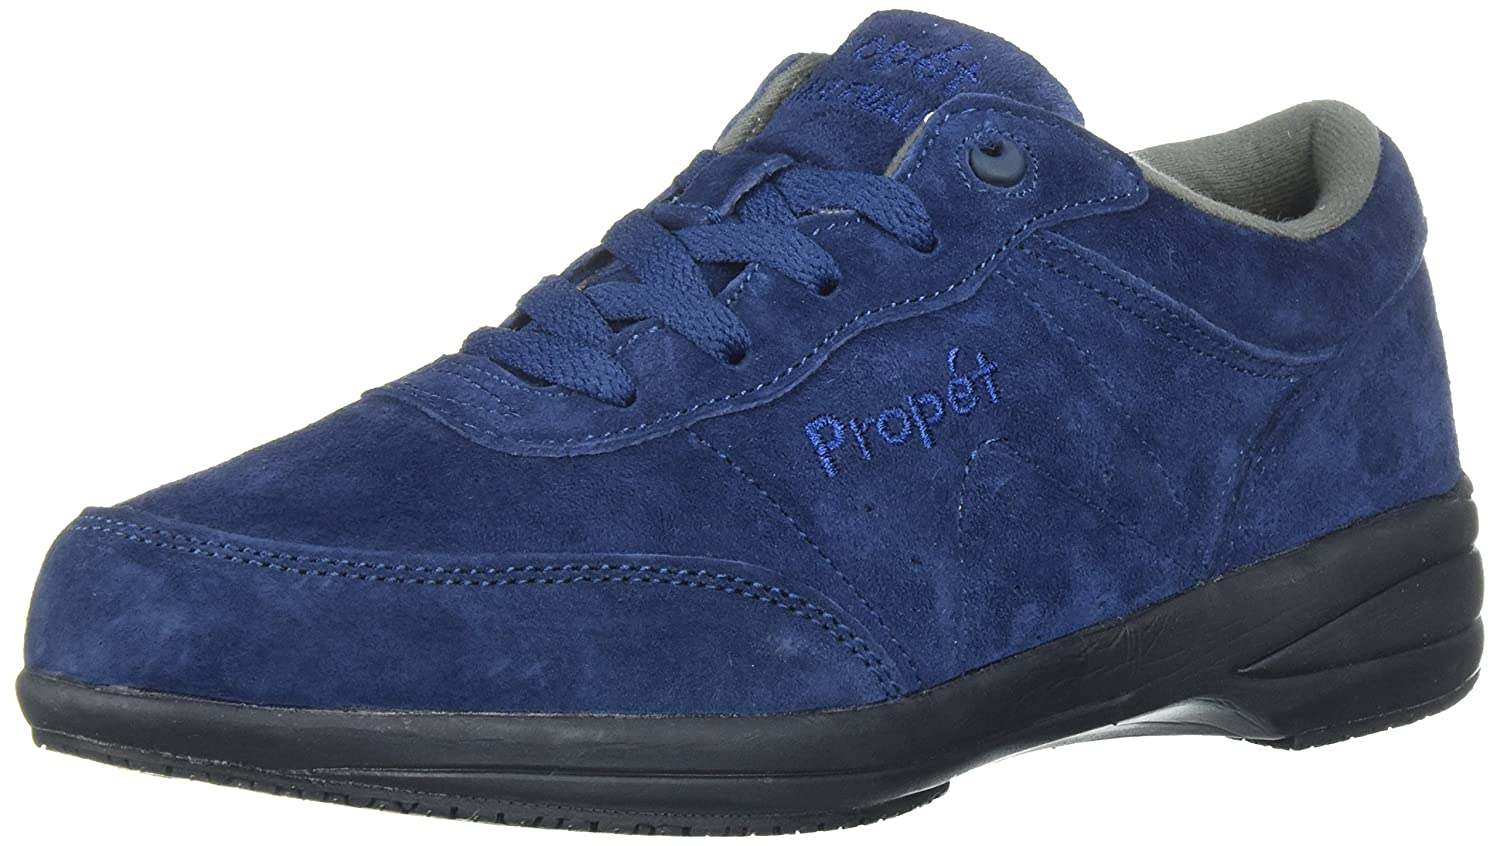 Propet Women's Washable Walker Sneaker B06XRT4LZF 7.5 N US|Sr Indigo